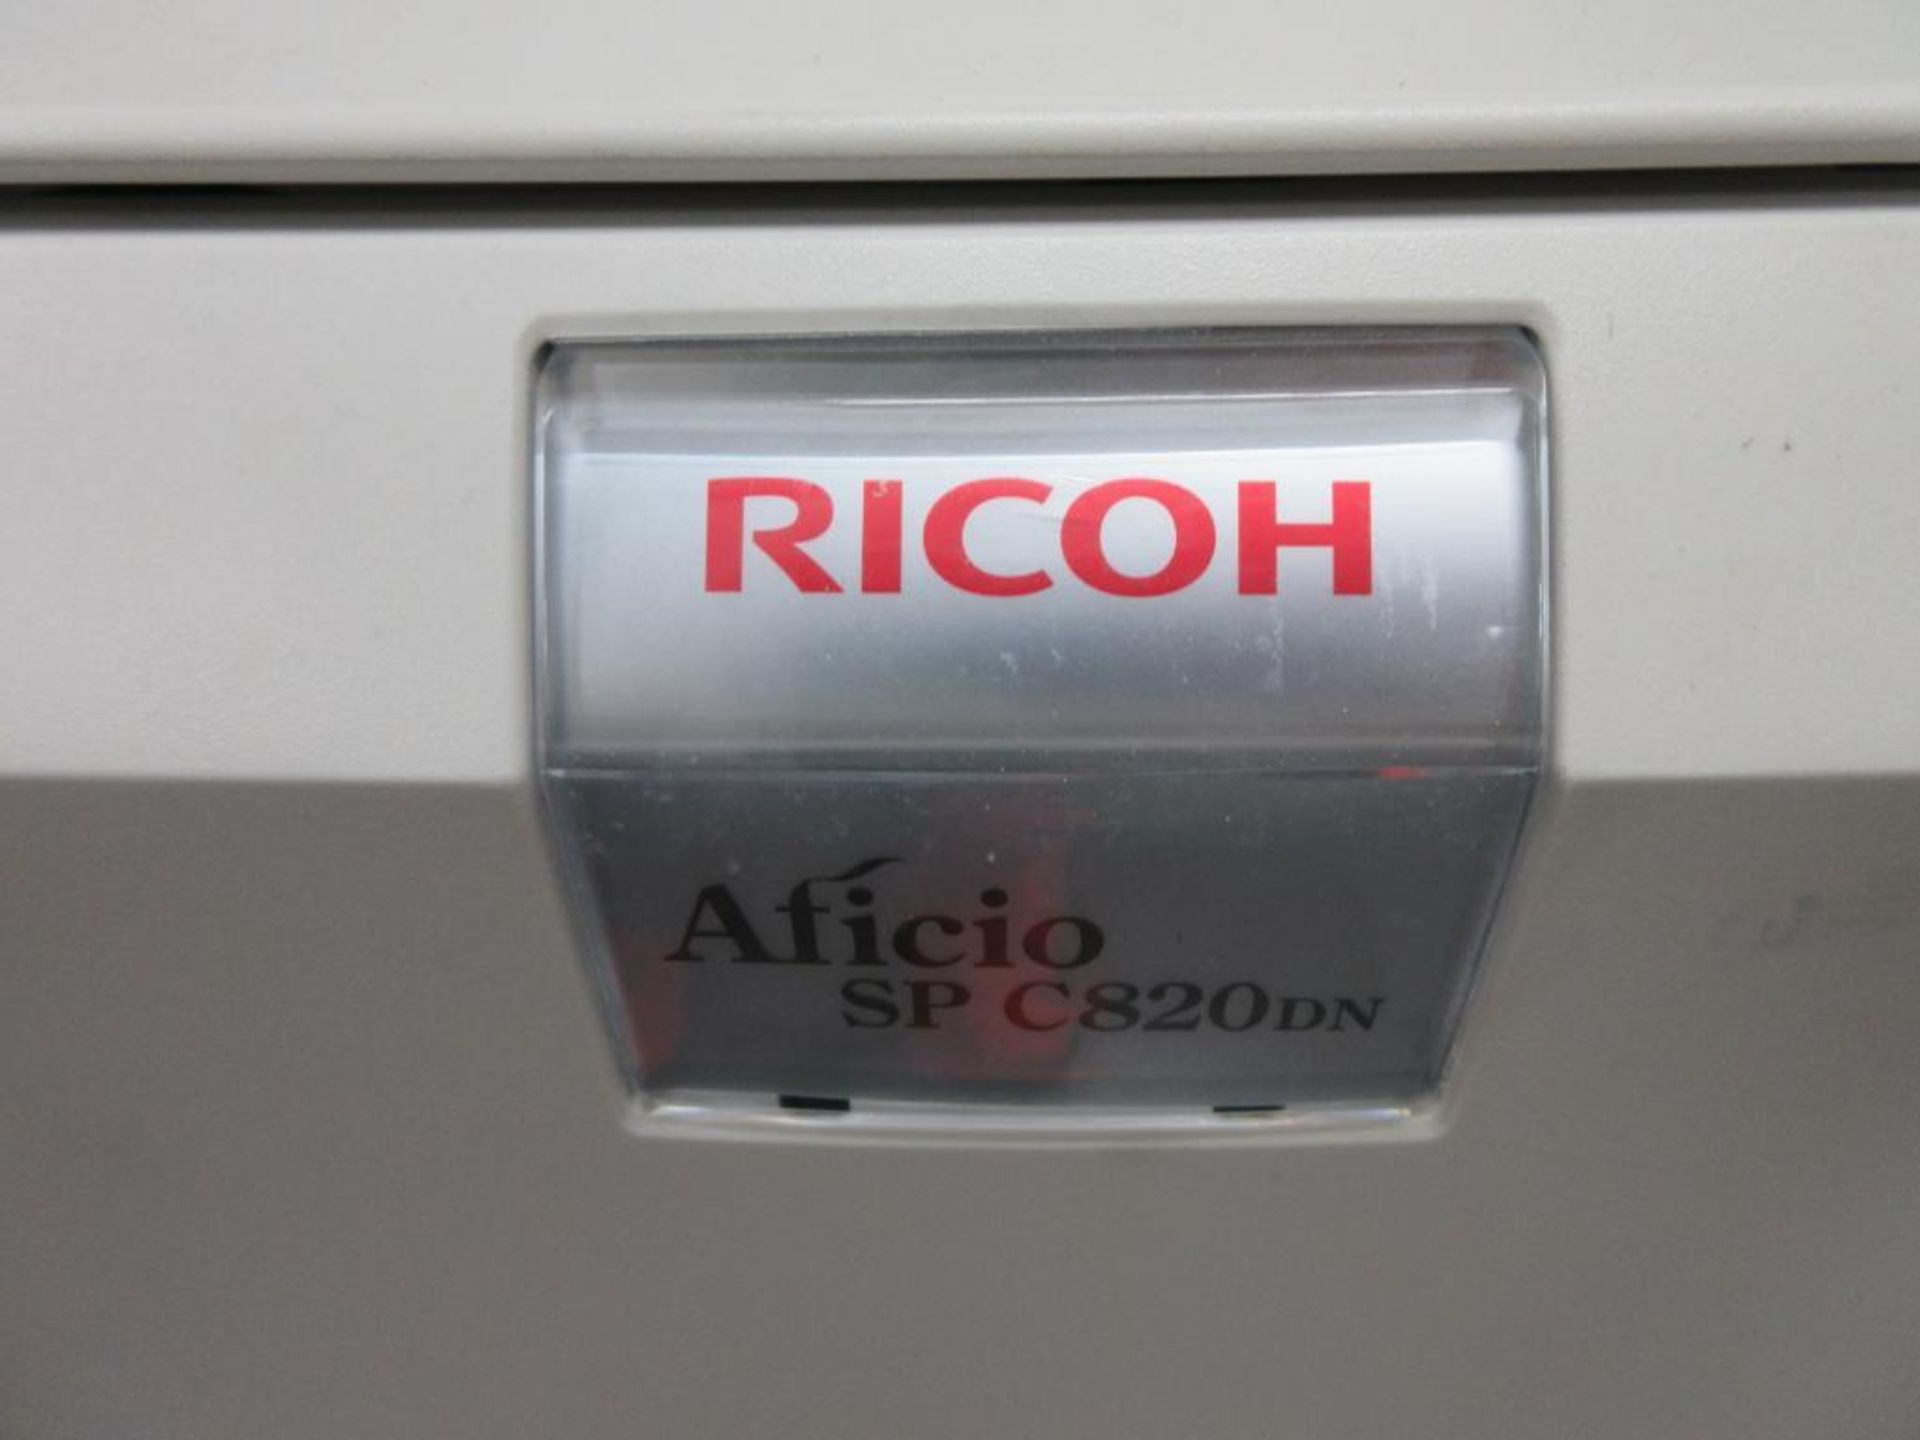 Ricoh Aficio SP C820DN colour printer, includes colour print cartridges - Image 3 of 4